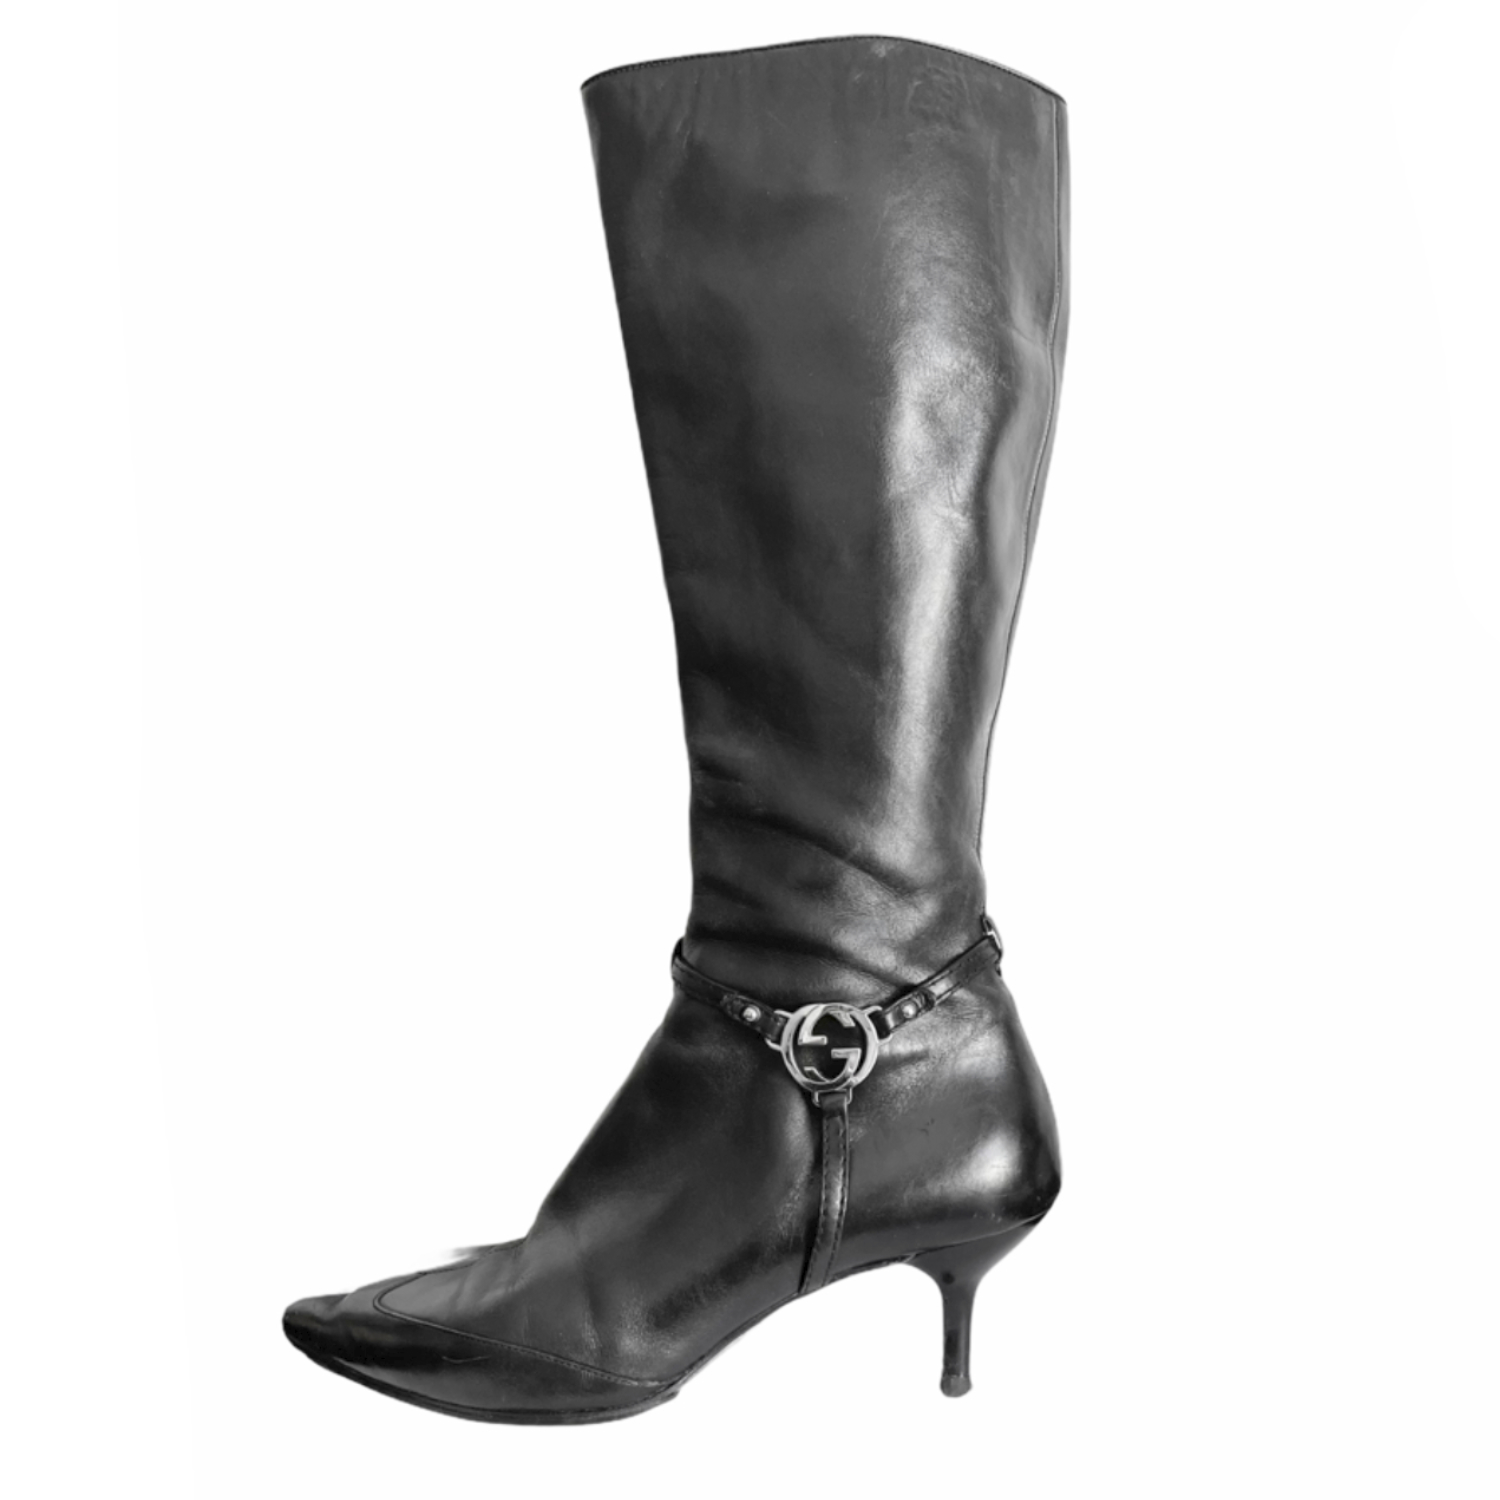 Vintage Gucci Logo Leather Boots in Black Size 5 | NITRYL